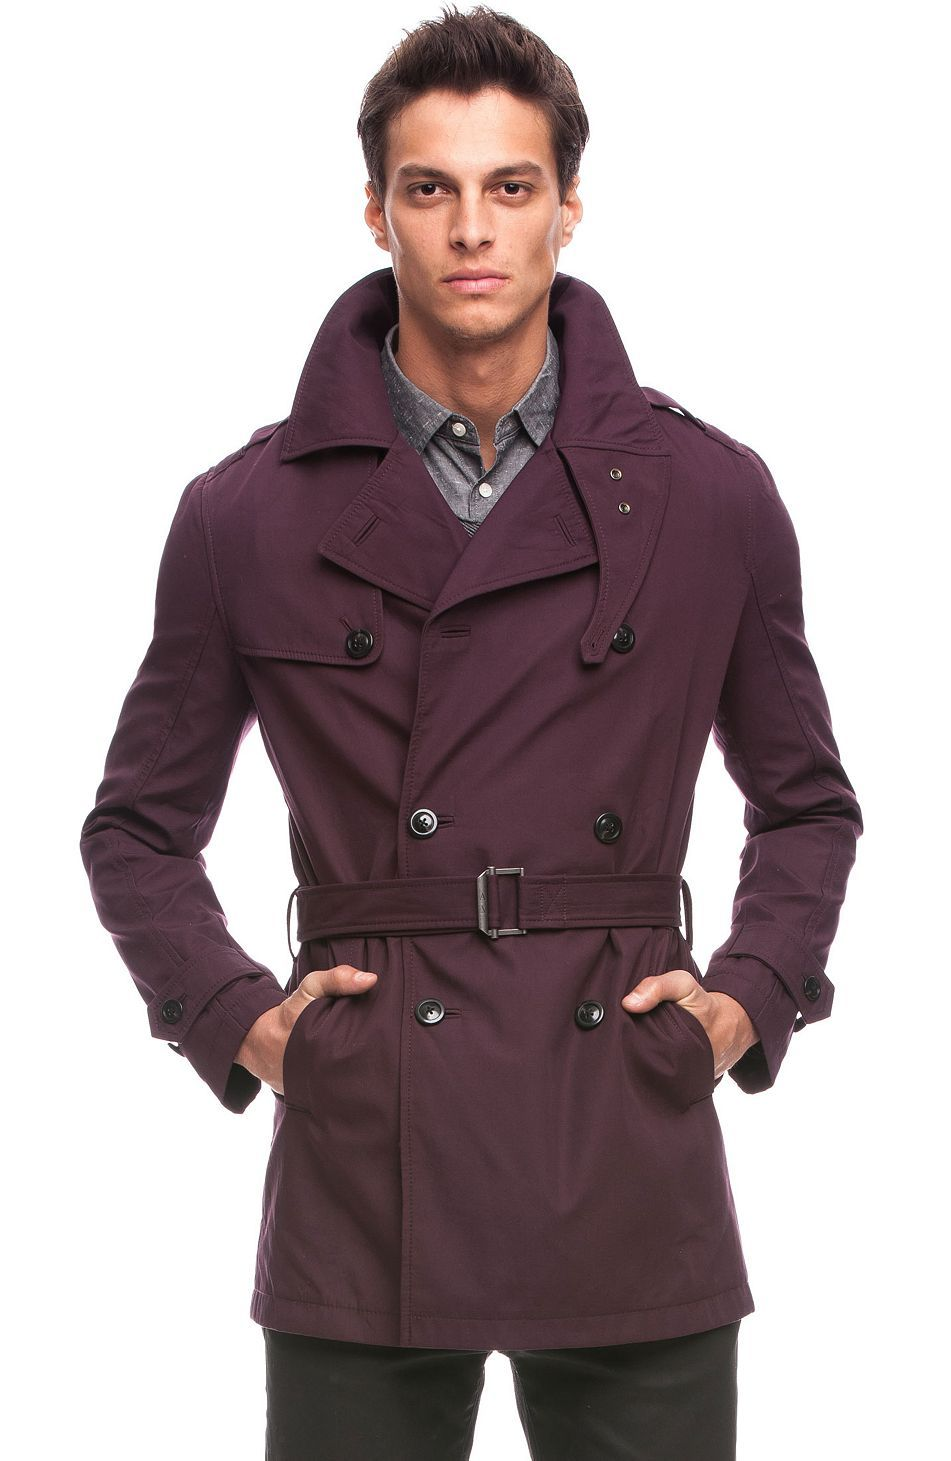 84f7c918 Burgundy trench coat from A|X Armani Exchange. That's a damn nice ...